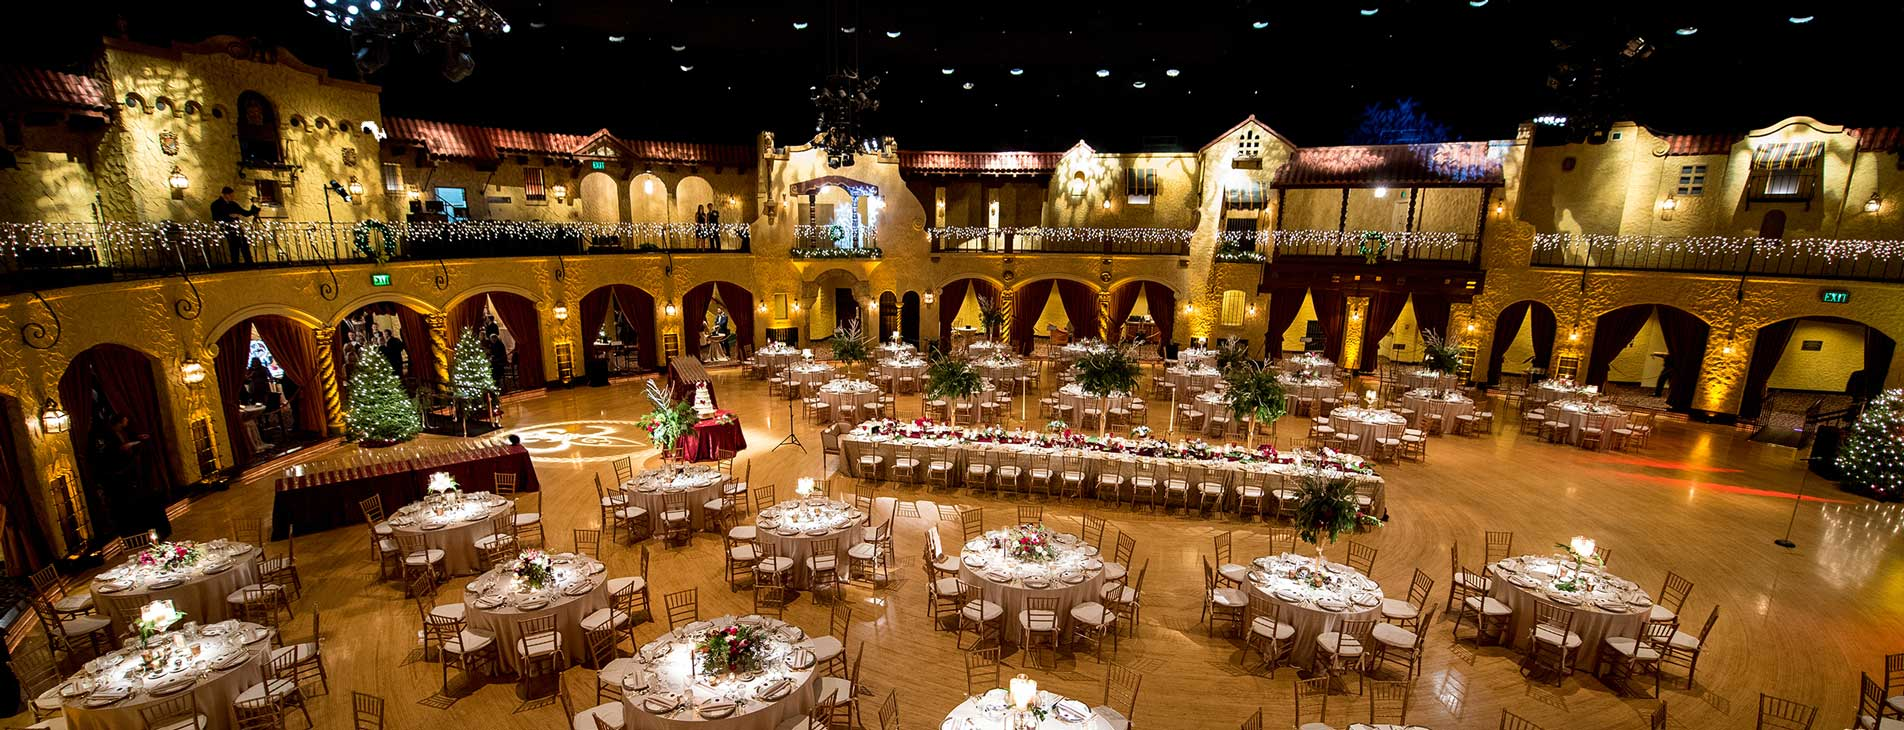 Indiana Roof Ballroom Venue hosting a Wedding by Crystal Catering